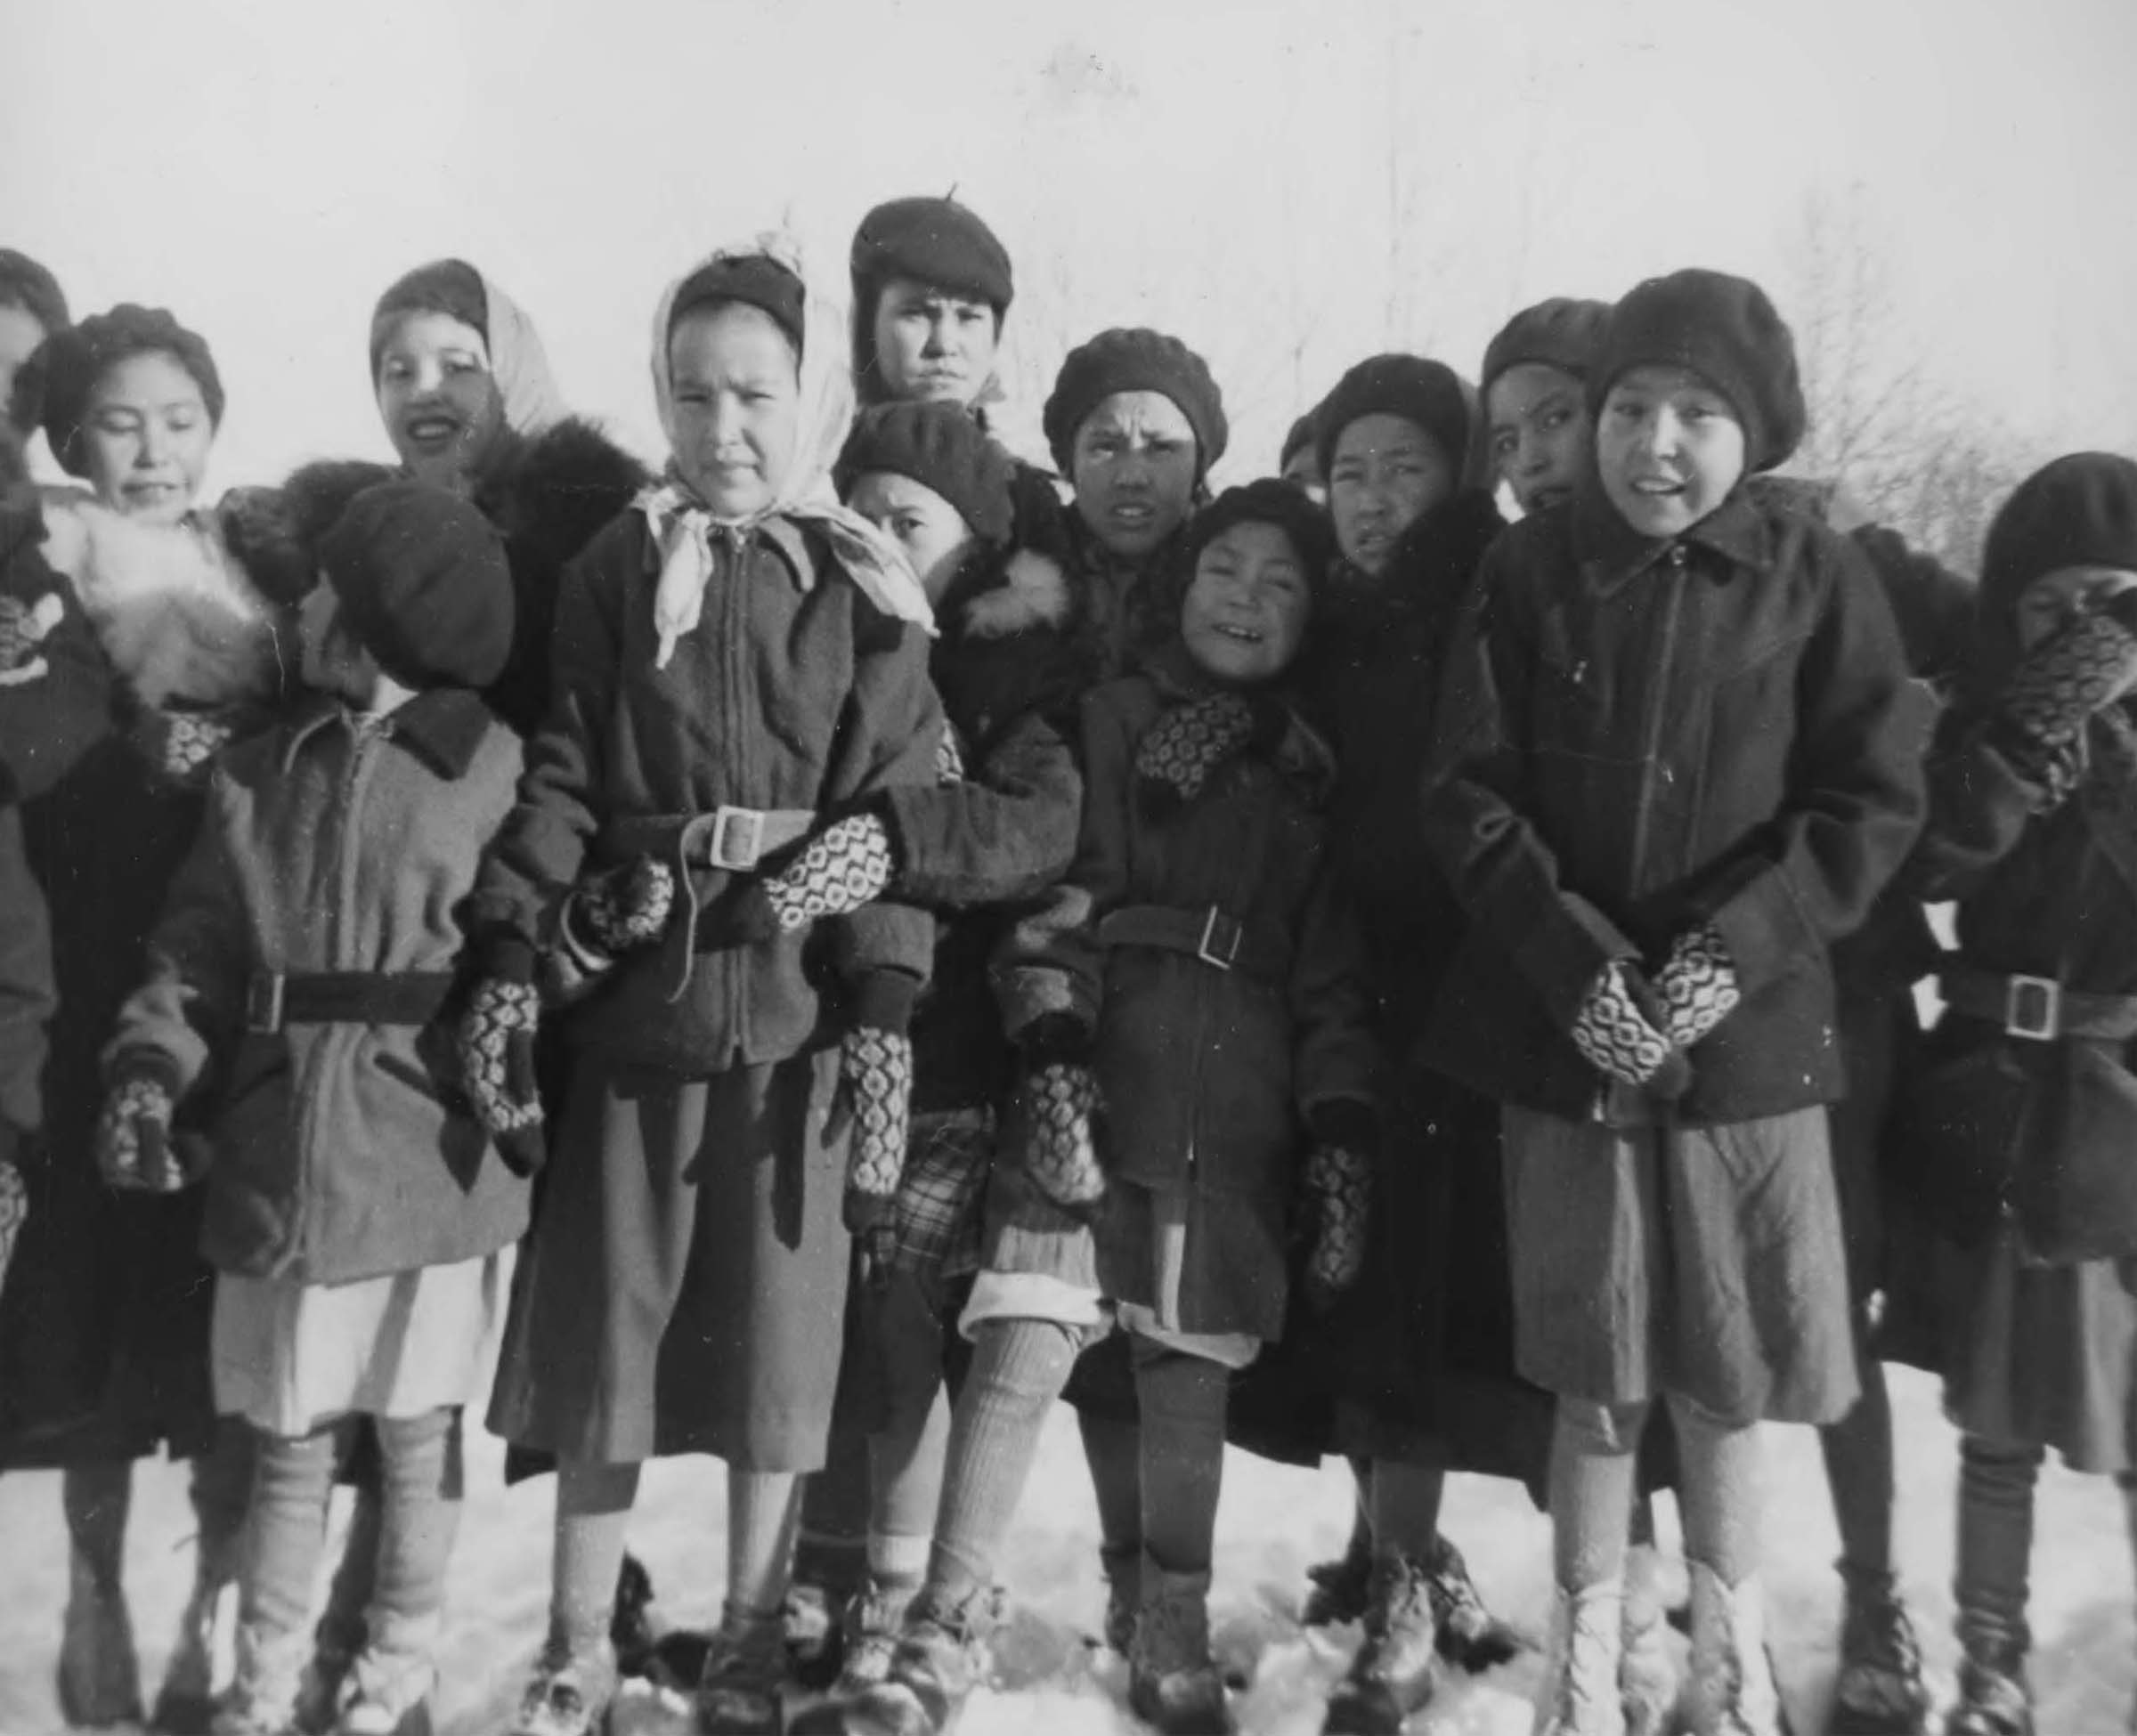 Assumption Hay Lakes Residential School students